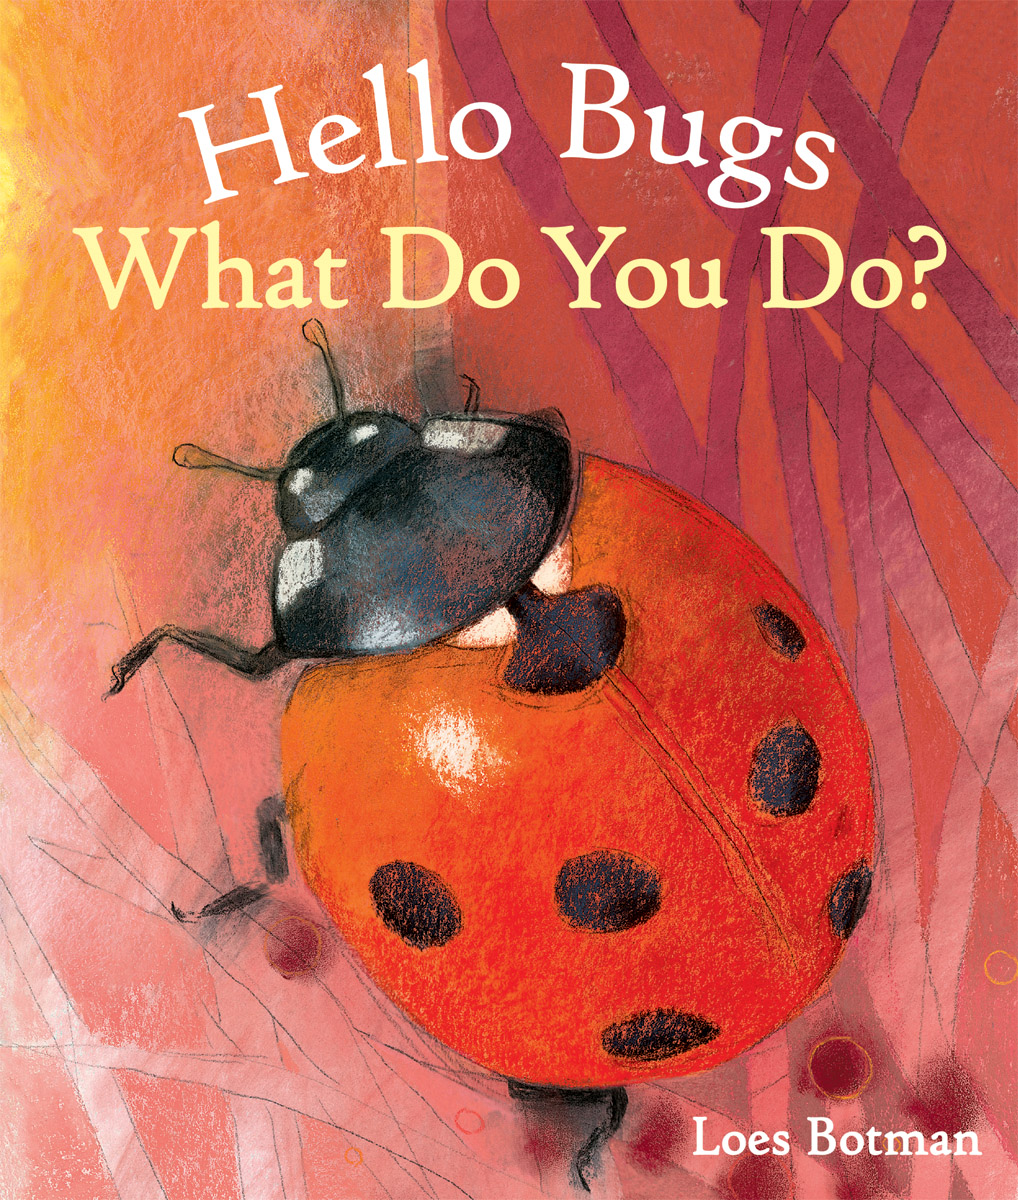 Hello Bugs, What Do You Do? - Floris Books